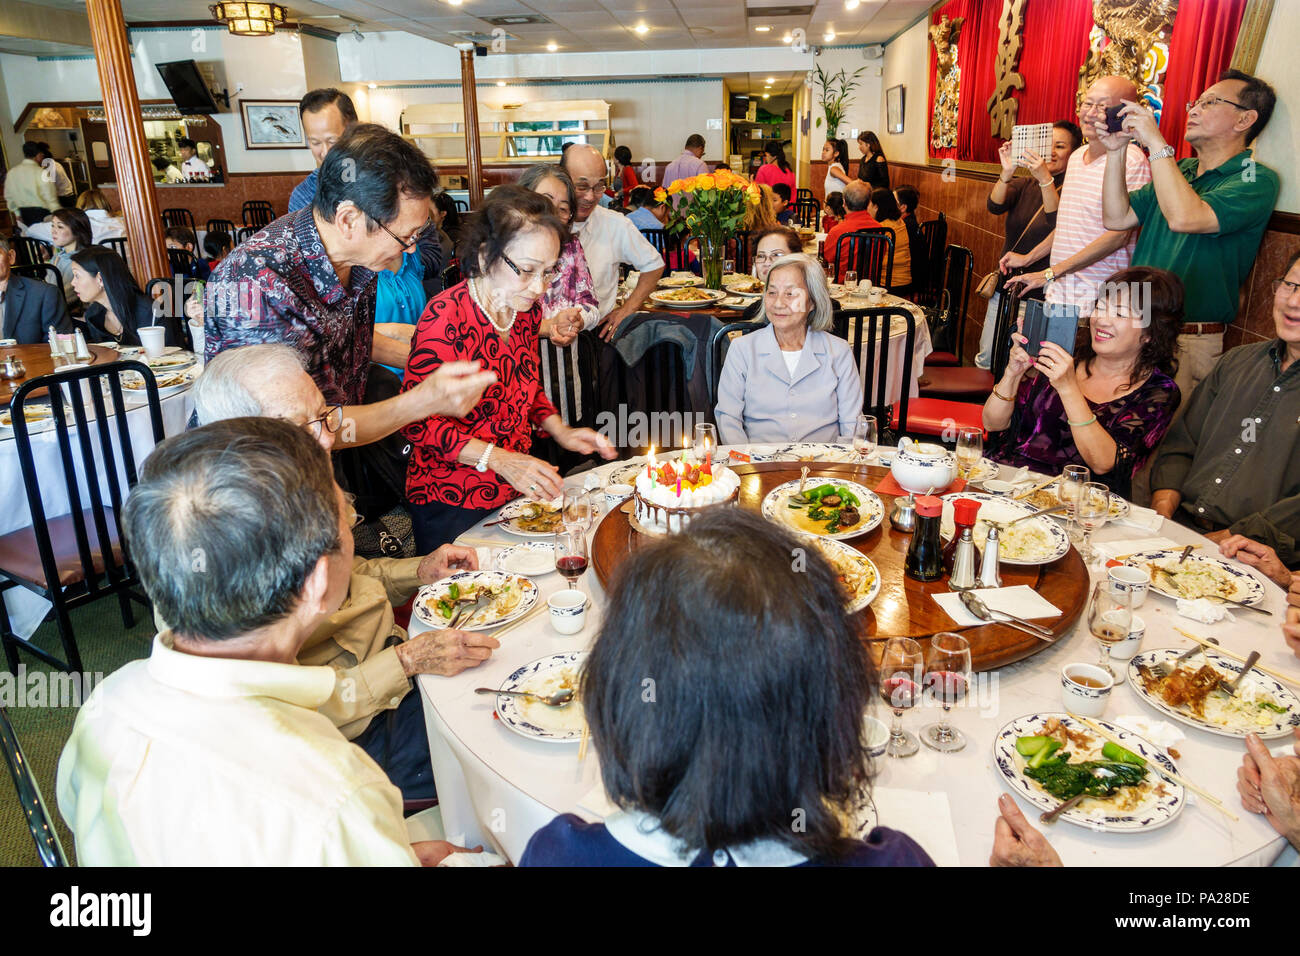 Orlando Florida Chinatown Lam's Garden Chinese restaurant dim sum ethnic dining large family lazy Susan table Asian man woman special event celebratio - Stock Image